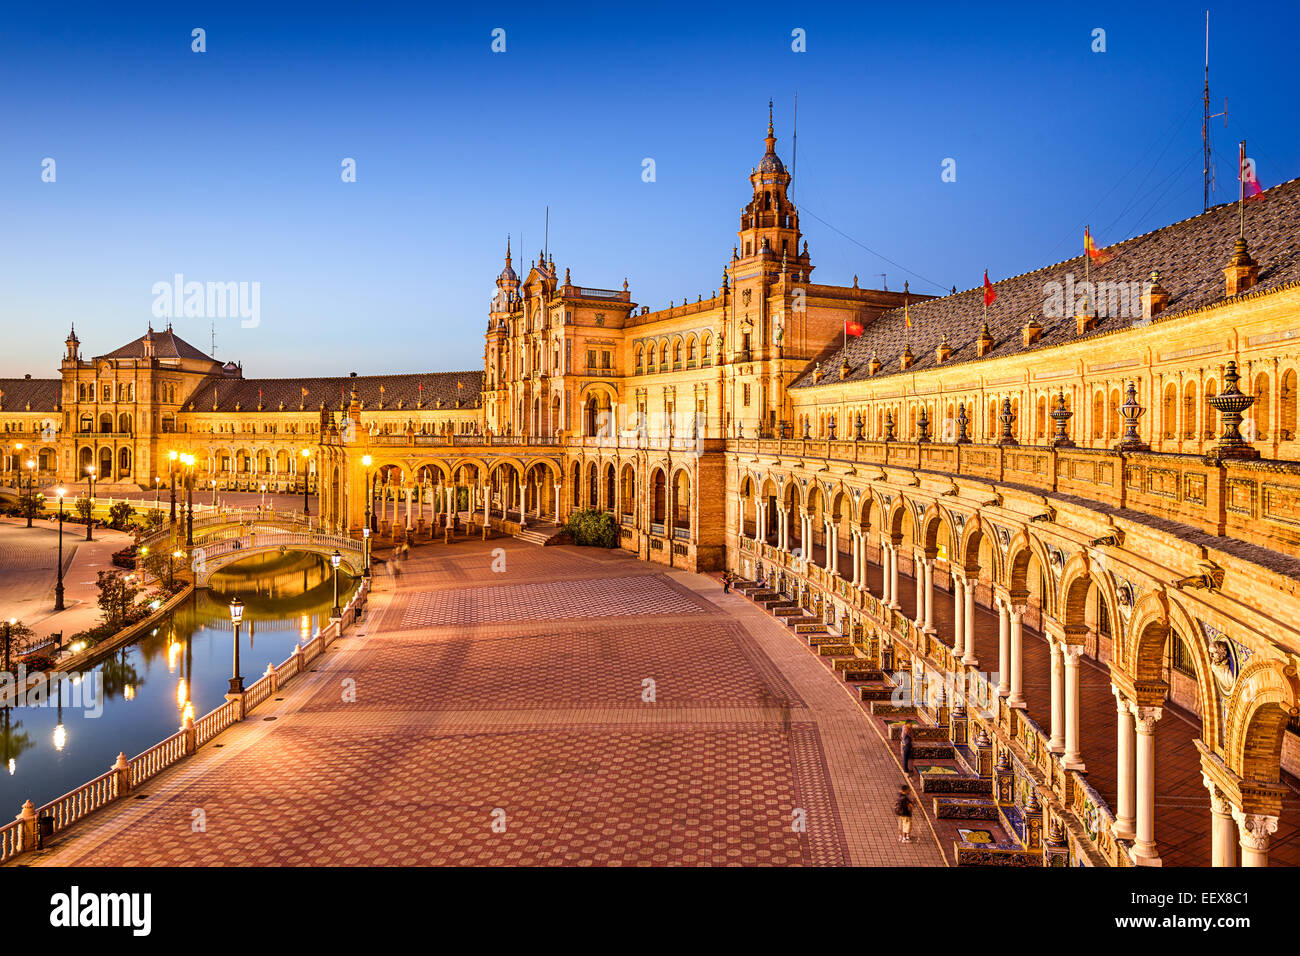 Seville, Spain at Spanish Square (Plaza de Espana). - Stock Image